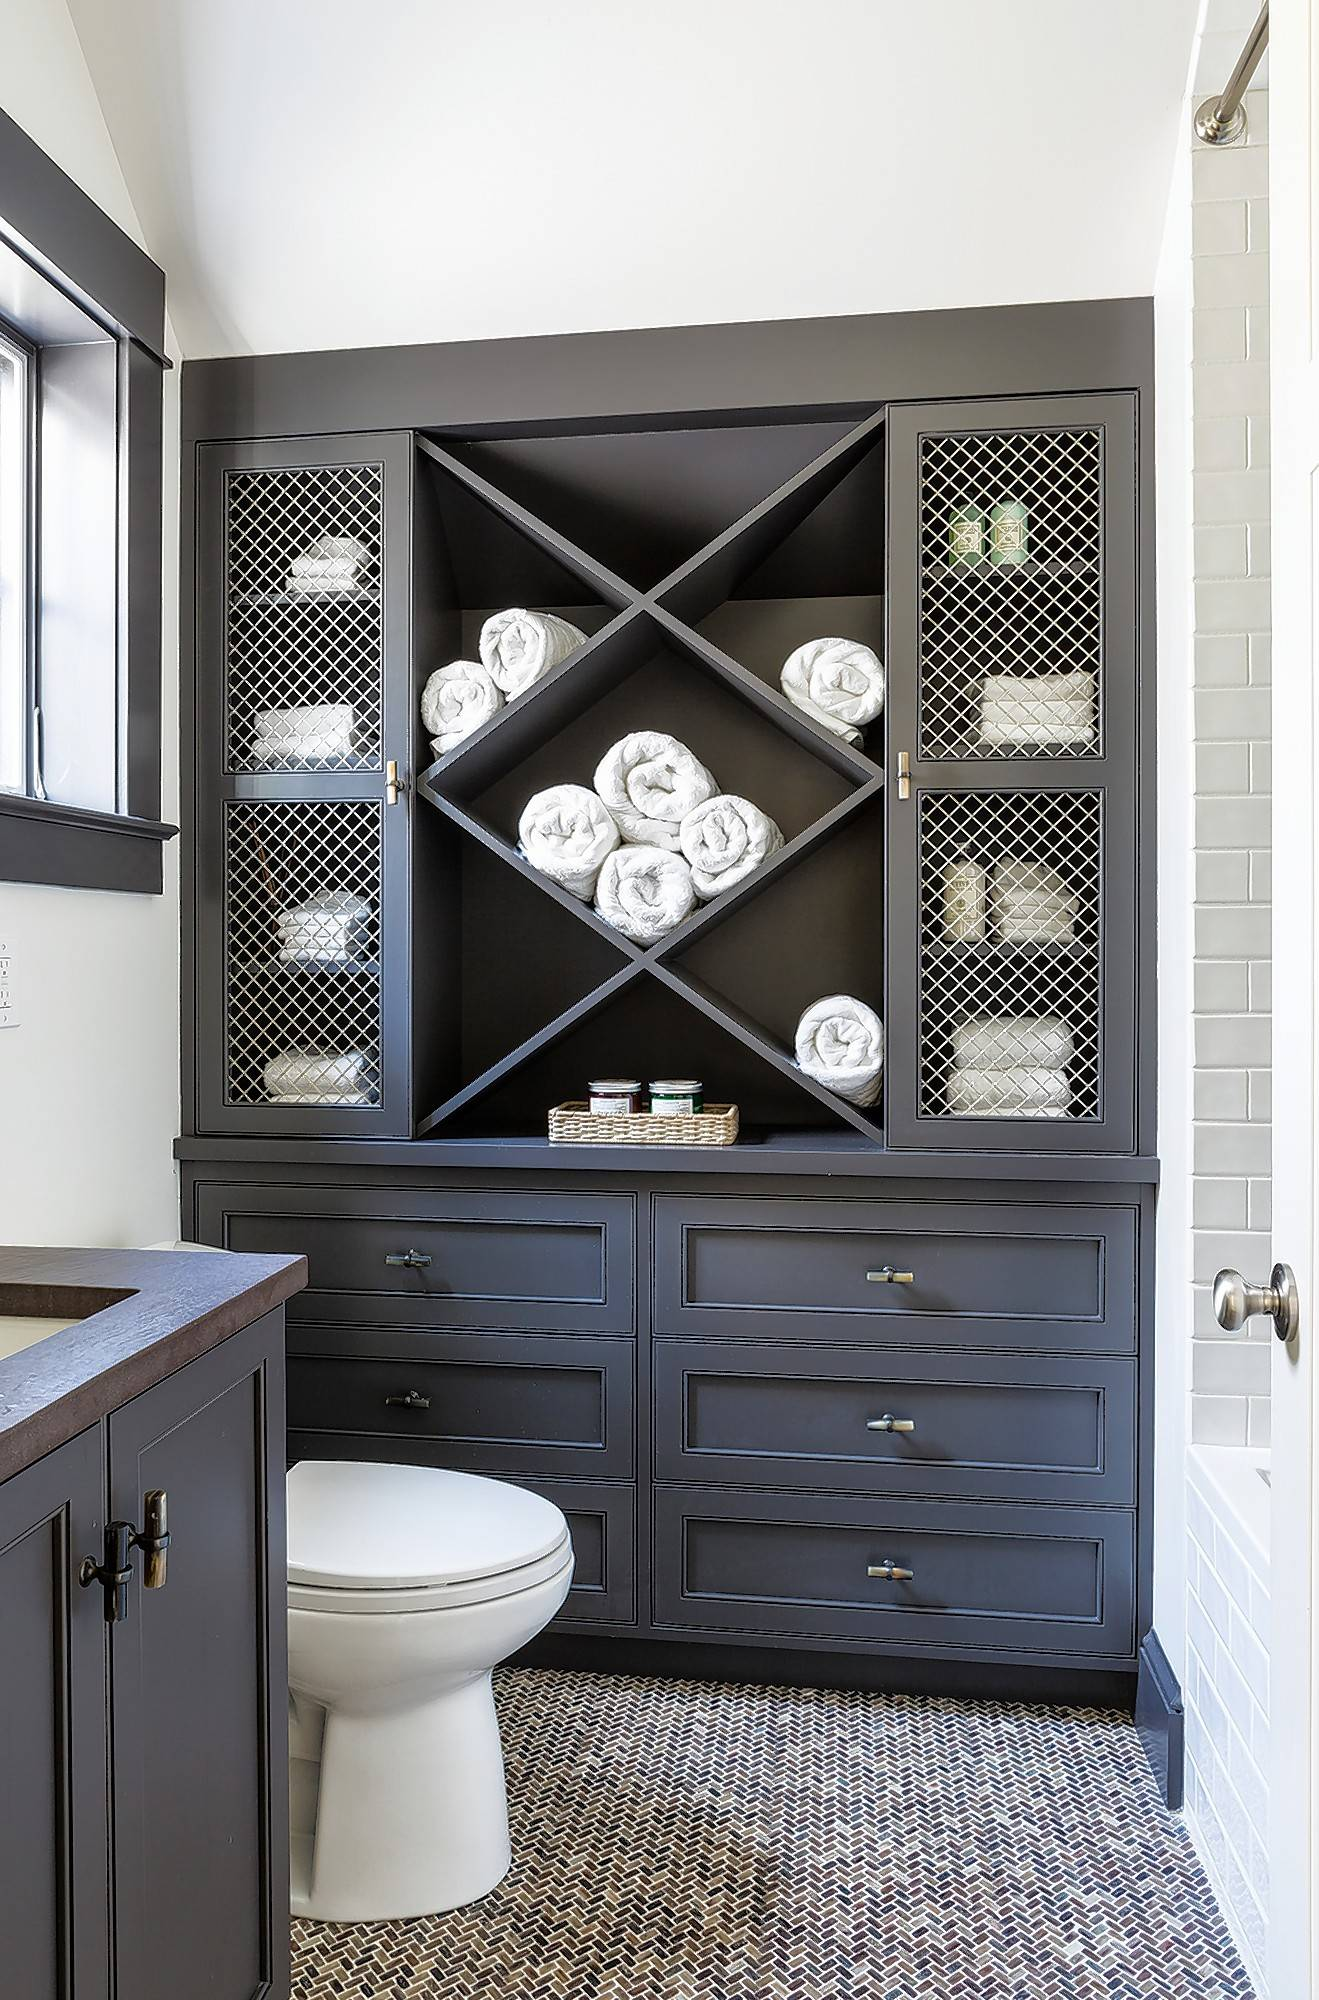 Take advantage of the vertical space in a small bathroom, designer Shazalynn Cavin-Winfrey says. A tall cabinet or a medicine cabinet over the toilet can make a big difference.